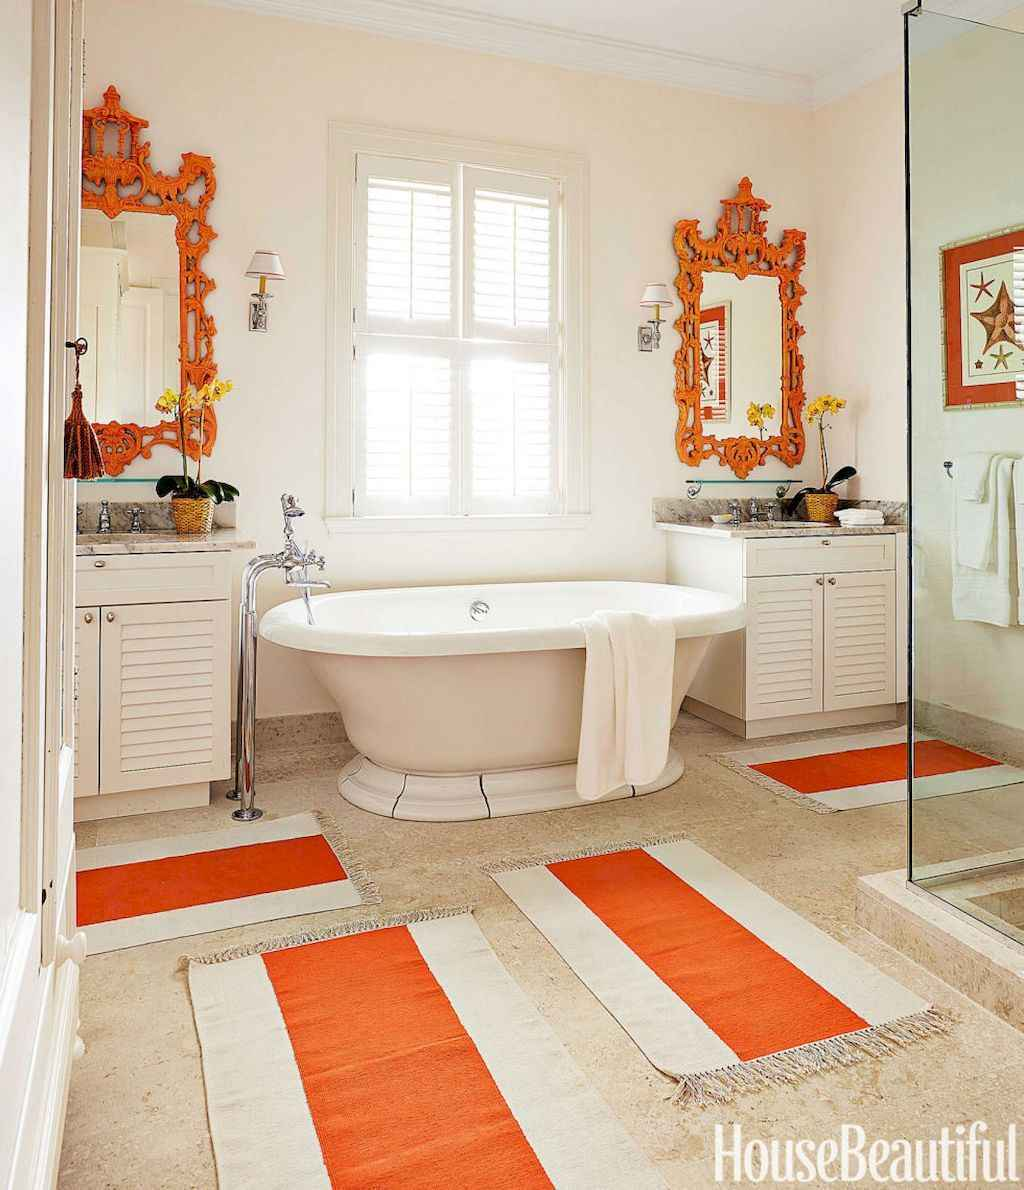 55 cool and relax bathroom design ideas (15)